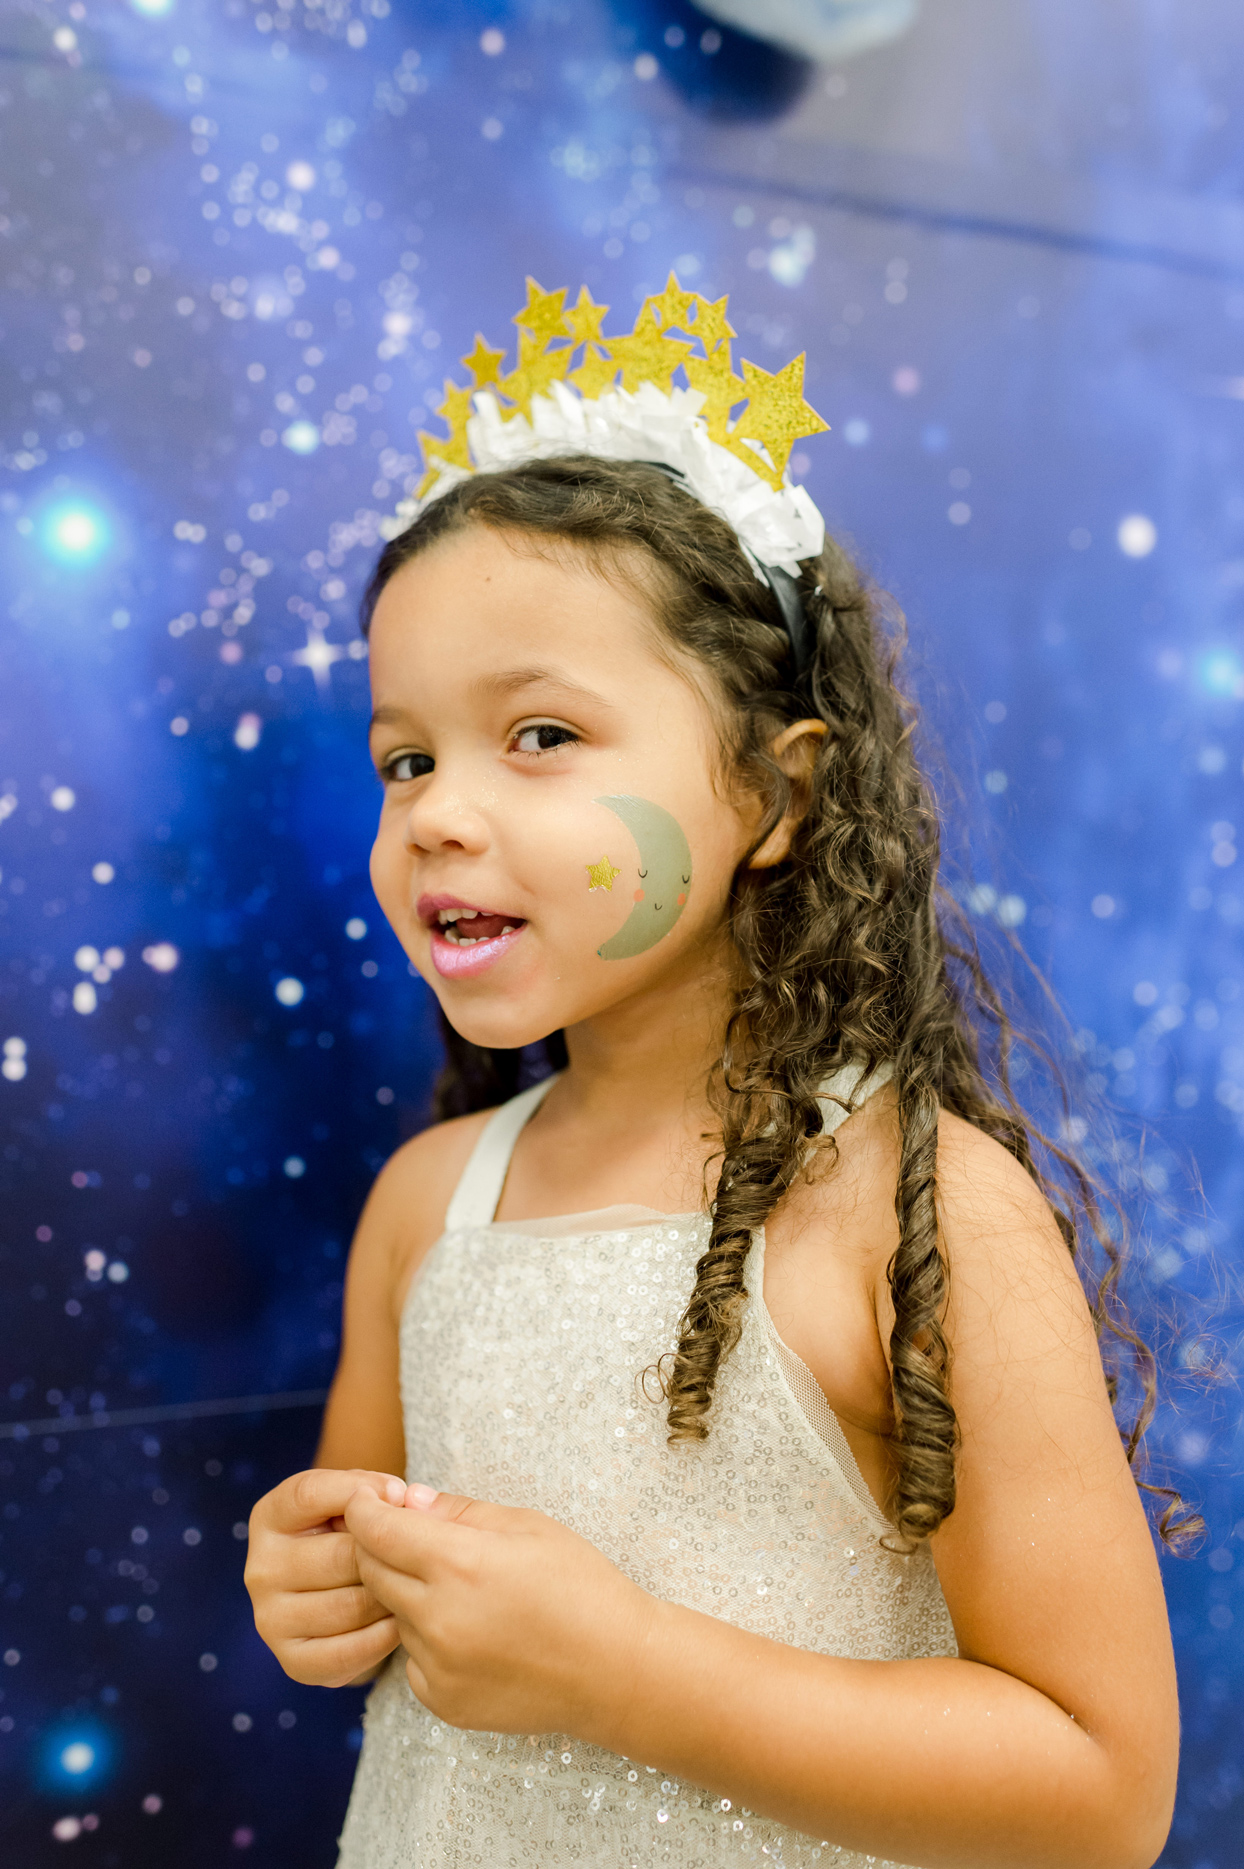 girl with star headband crown and moon and star painted cheek